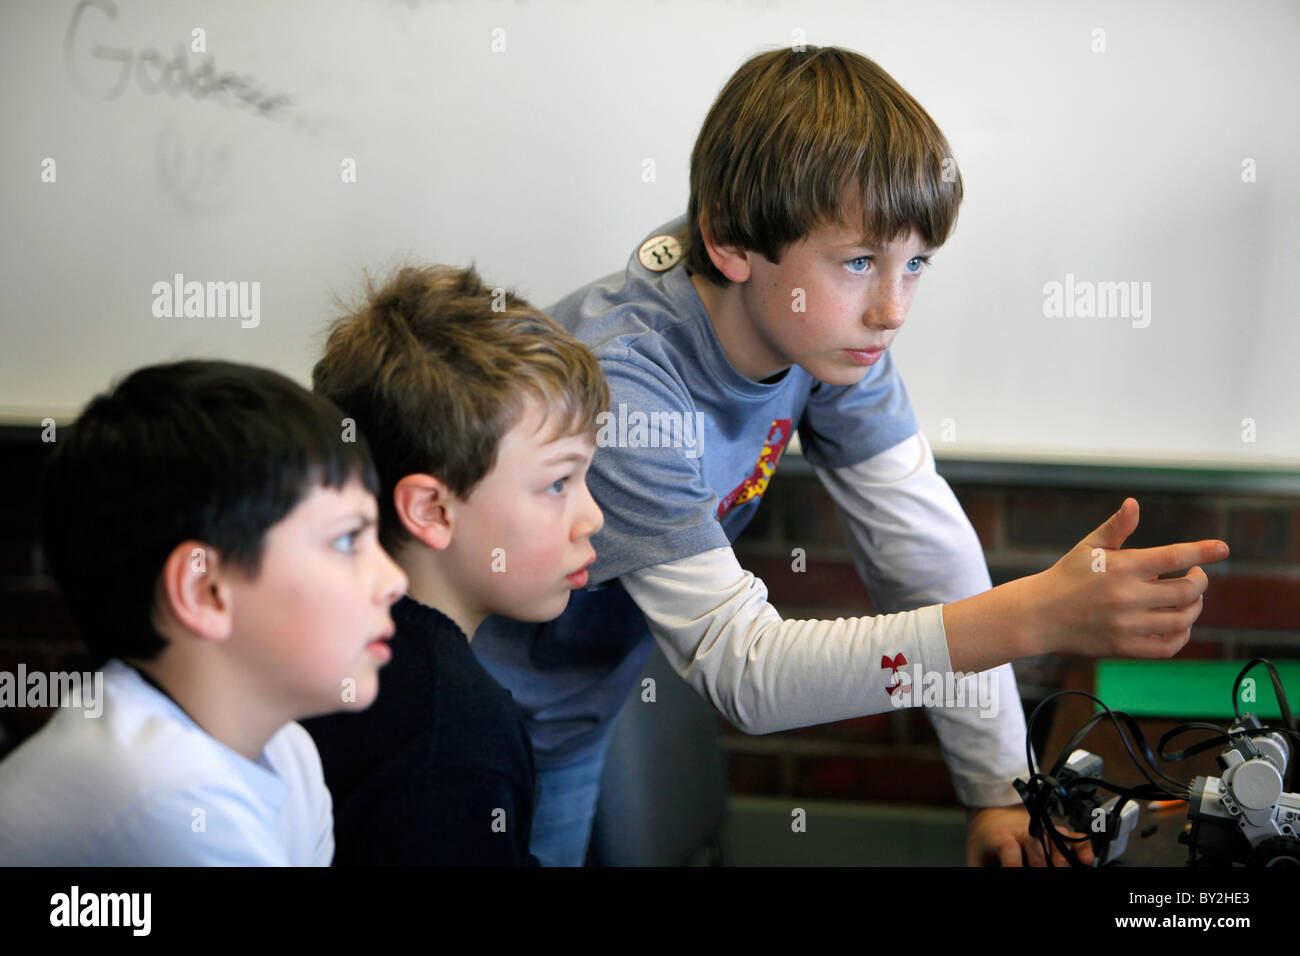 Preteen boys in a classroom setting - Stock Image